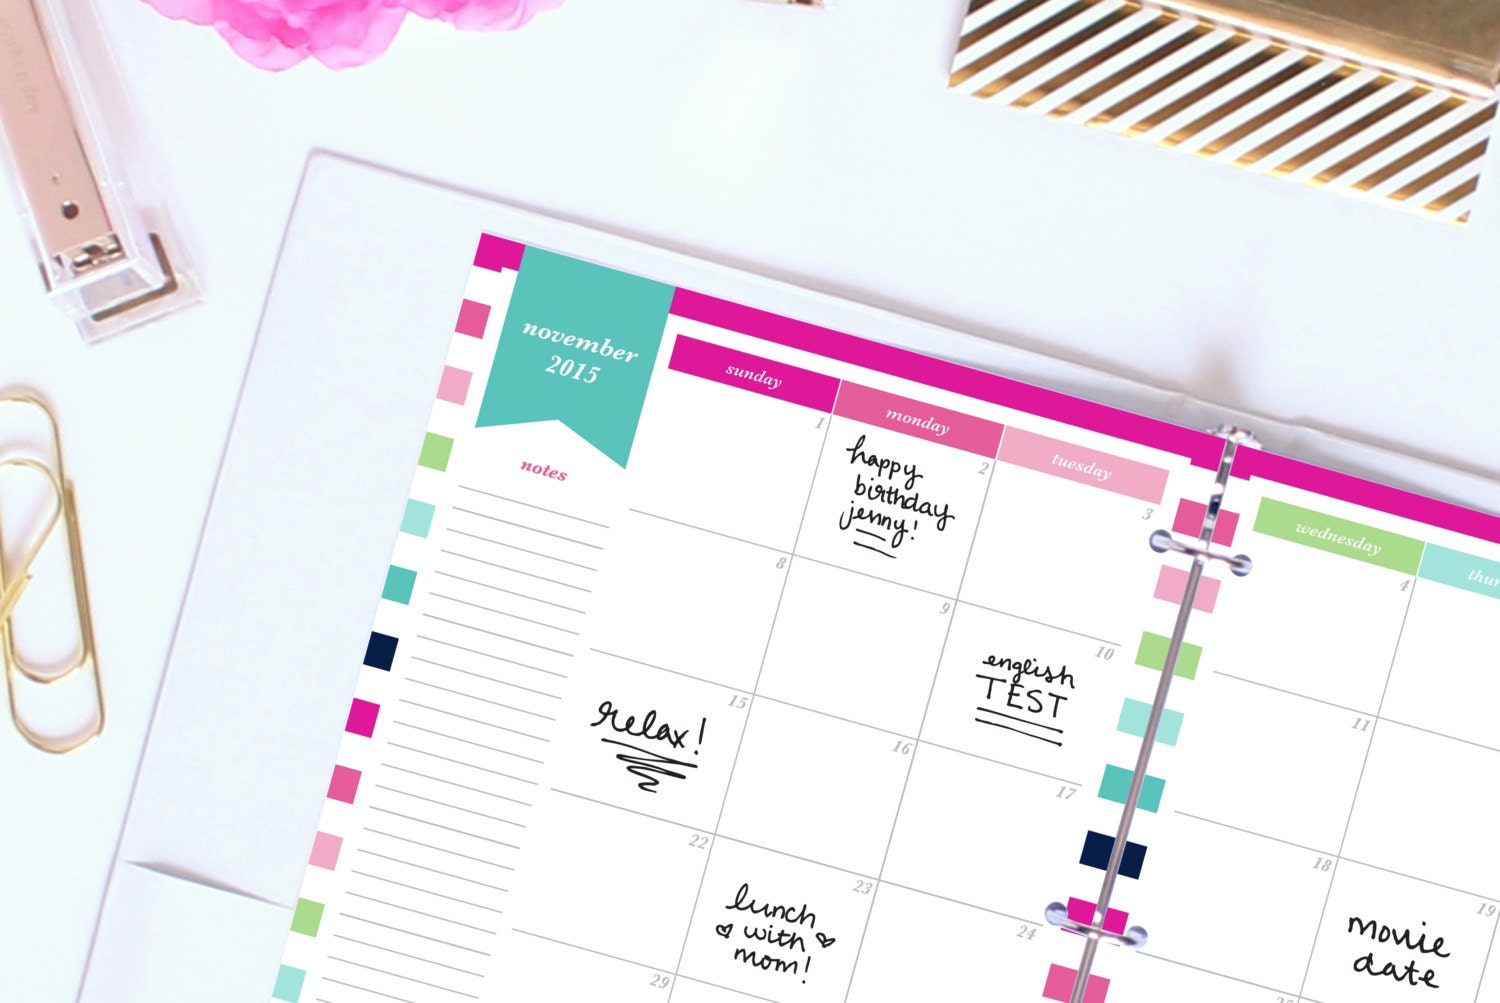 Printable Planner Pages 8.5x11in 2015-2016 by ThePreppyGreek